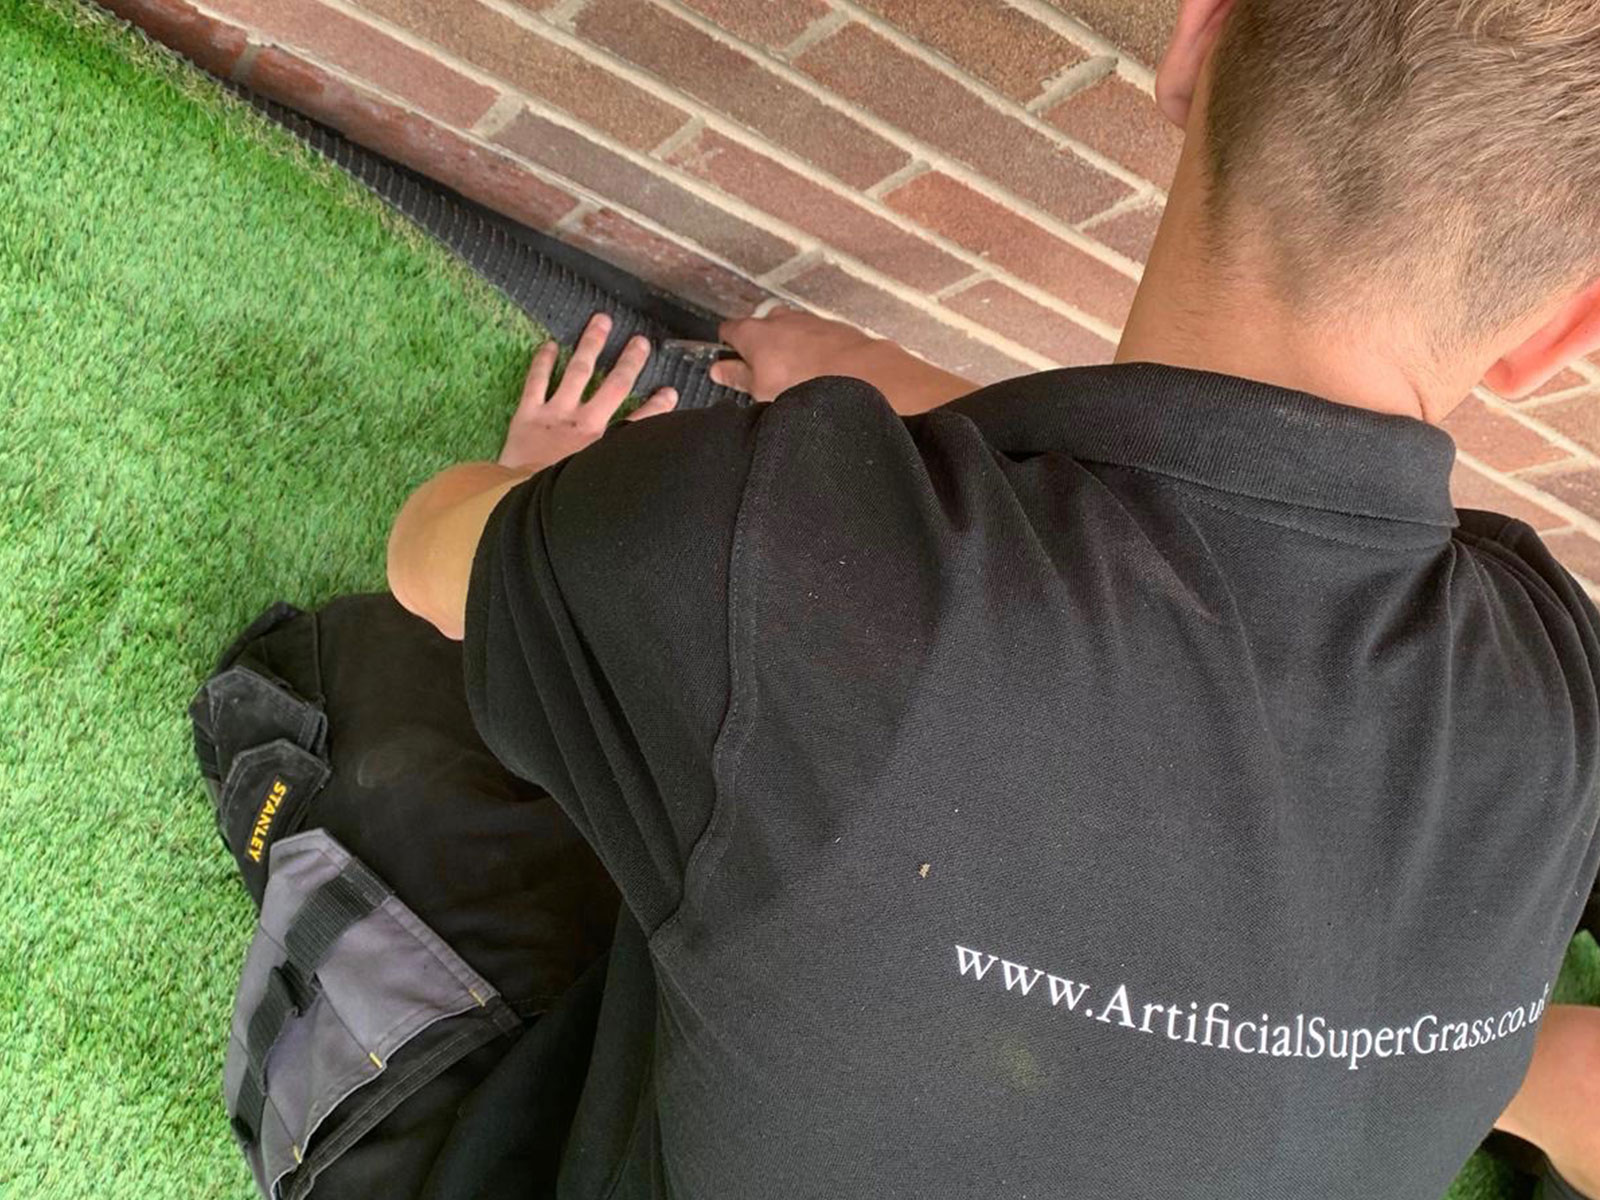 Best Grass For Your Artificial Lawn Stockton on Tees Artificial Super Grass